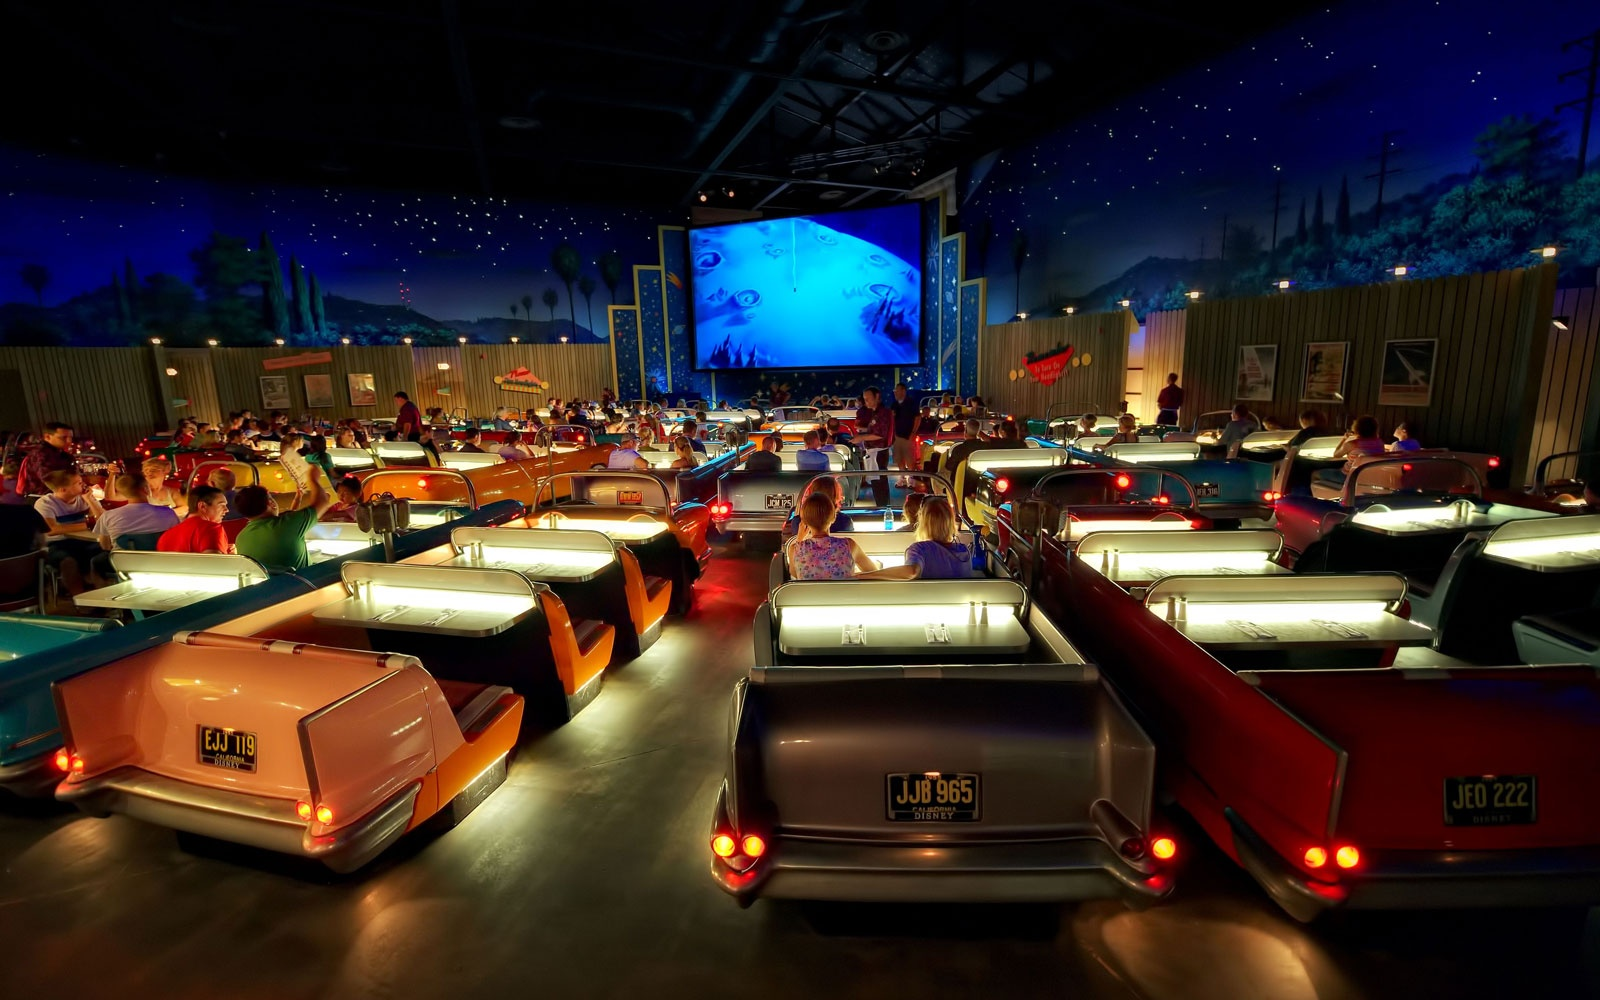 Sci-Fi Dine-In Theater Restaurant, Disney's Hollywood Studios